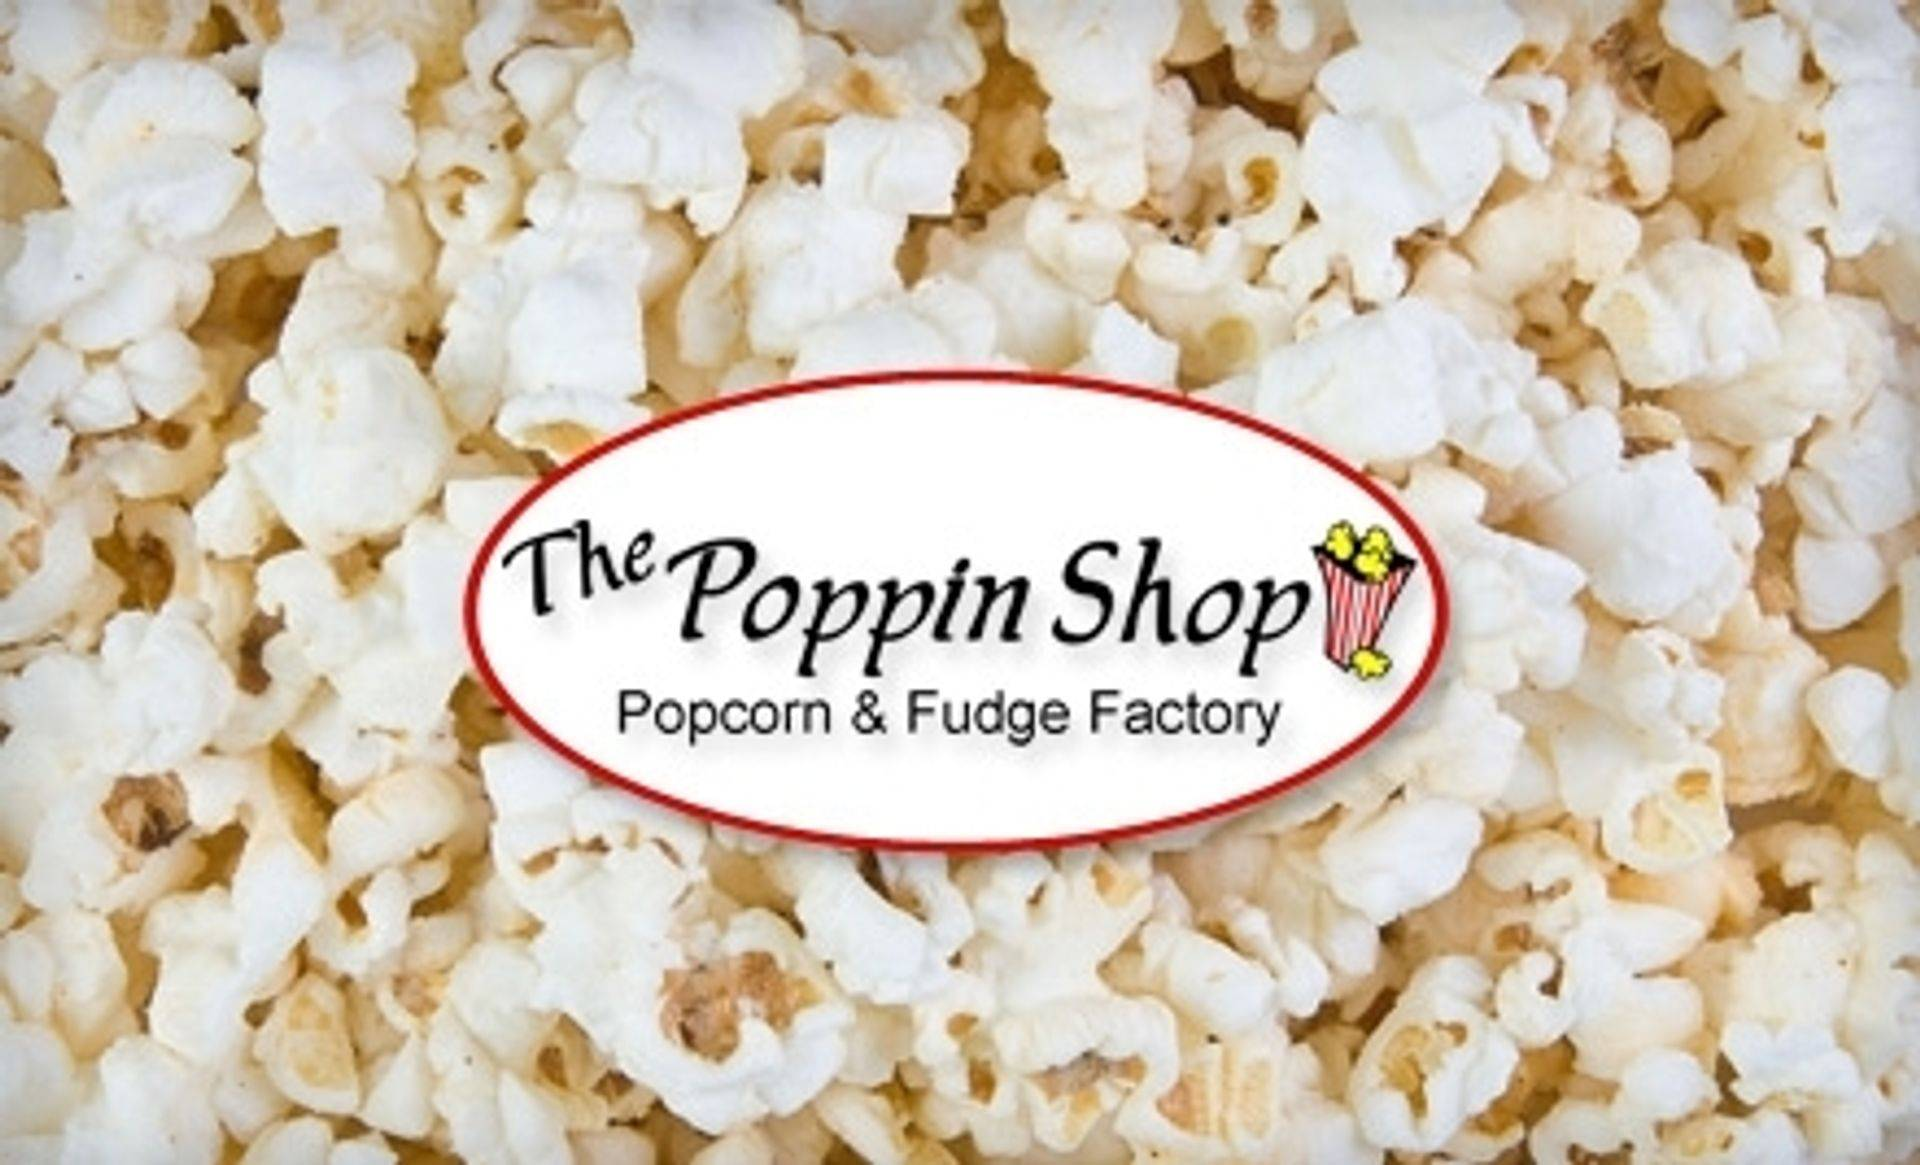 The Poppin Shop